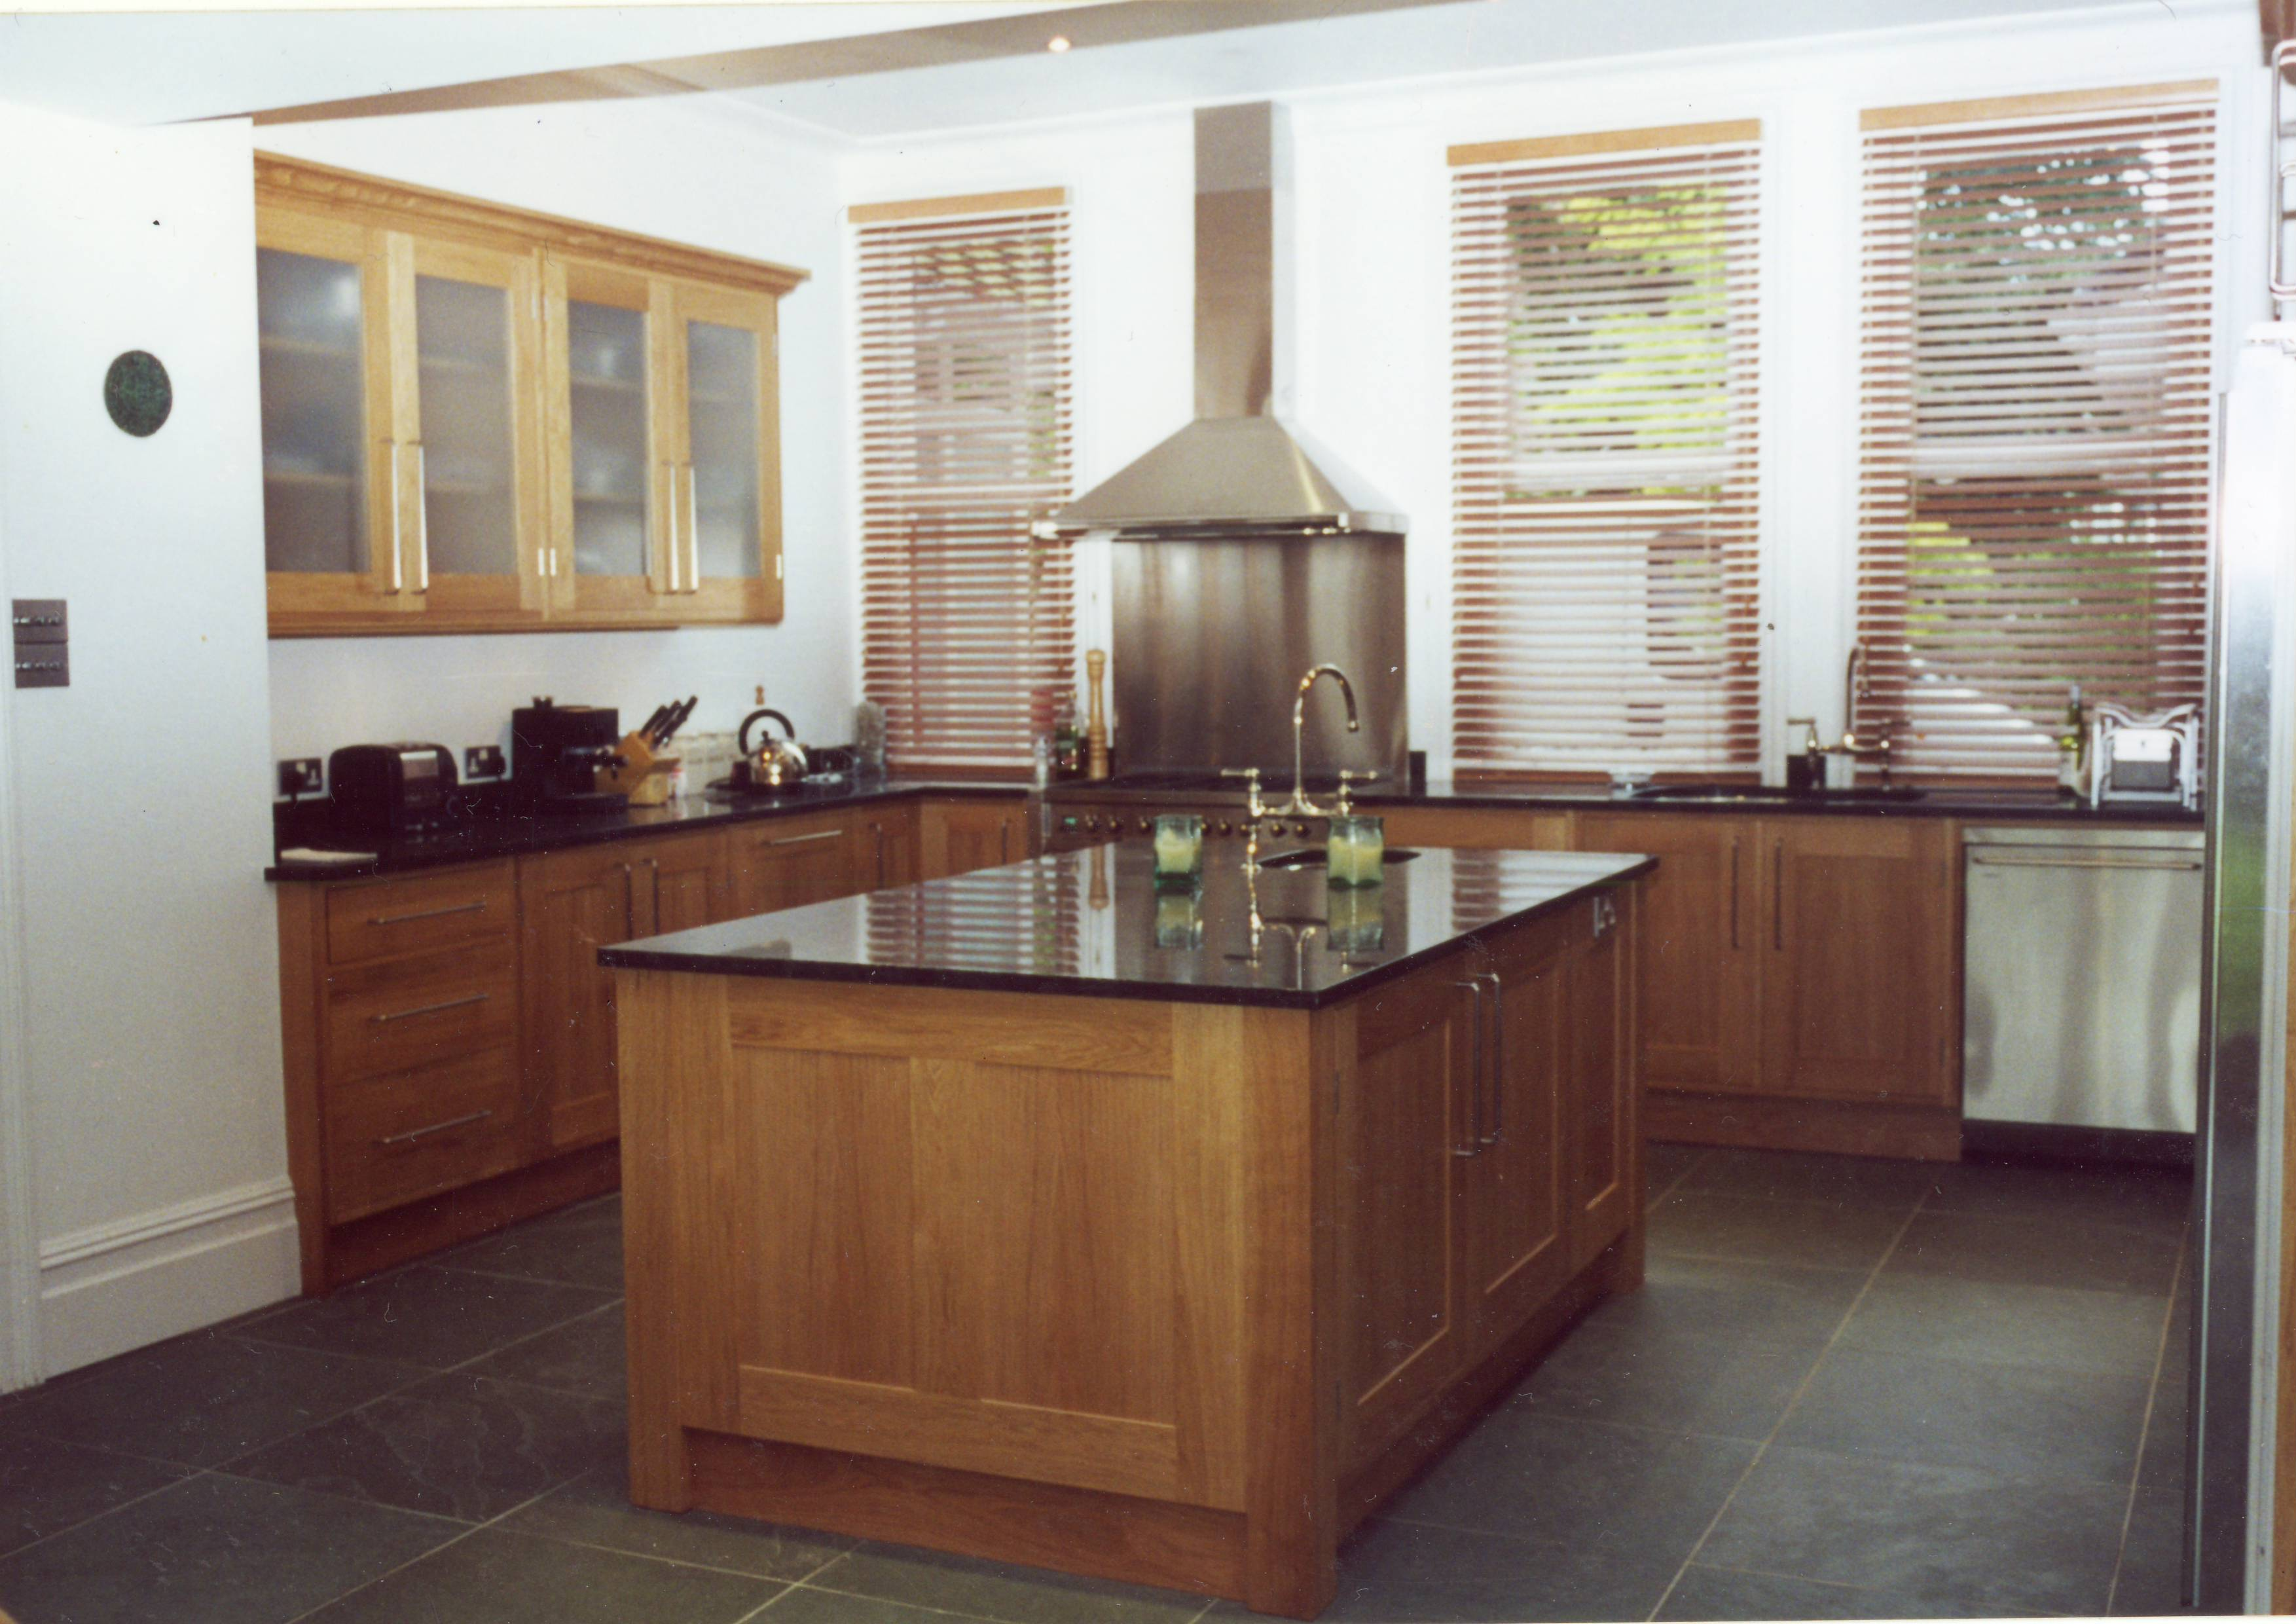 Handmade bespoke kitchens broughton joinery fitted for Handmade kitchens